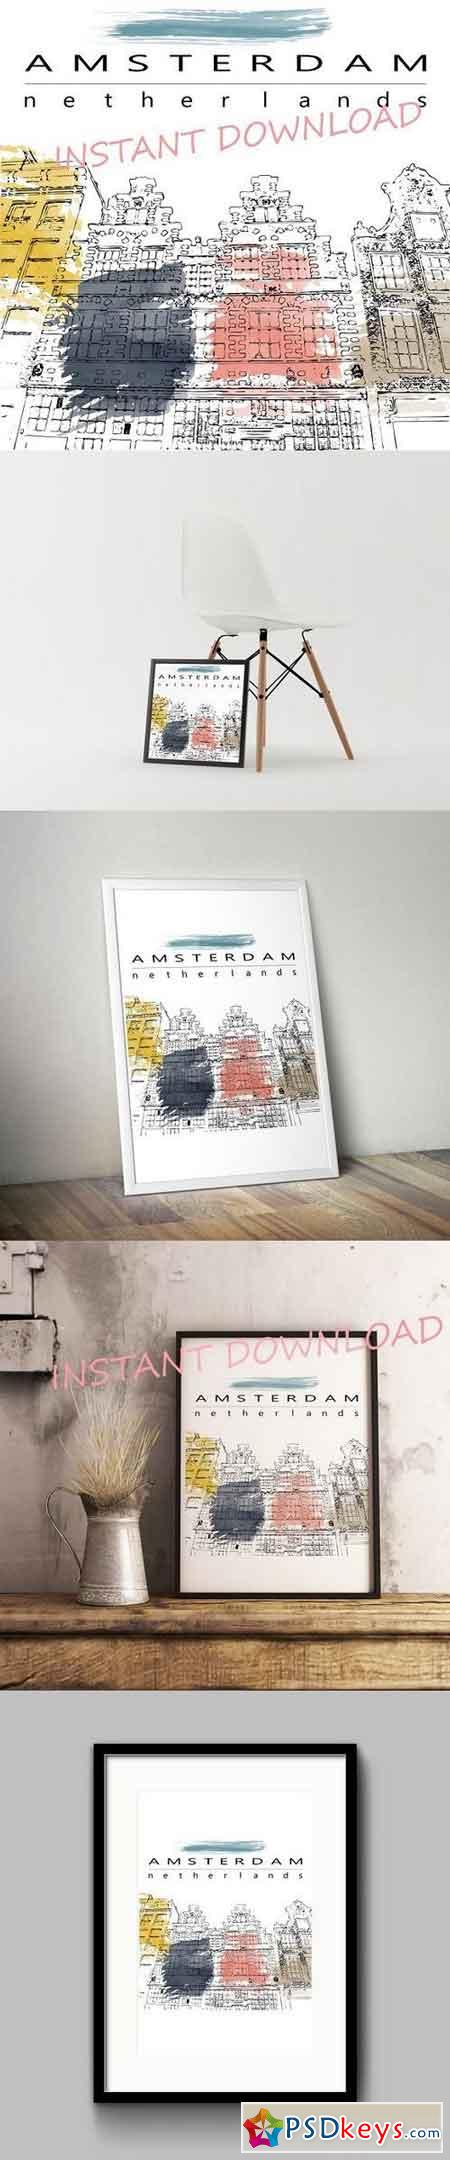 Amsterdam houses sketch illustration 1317572